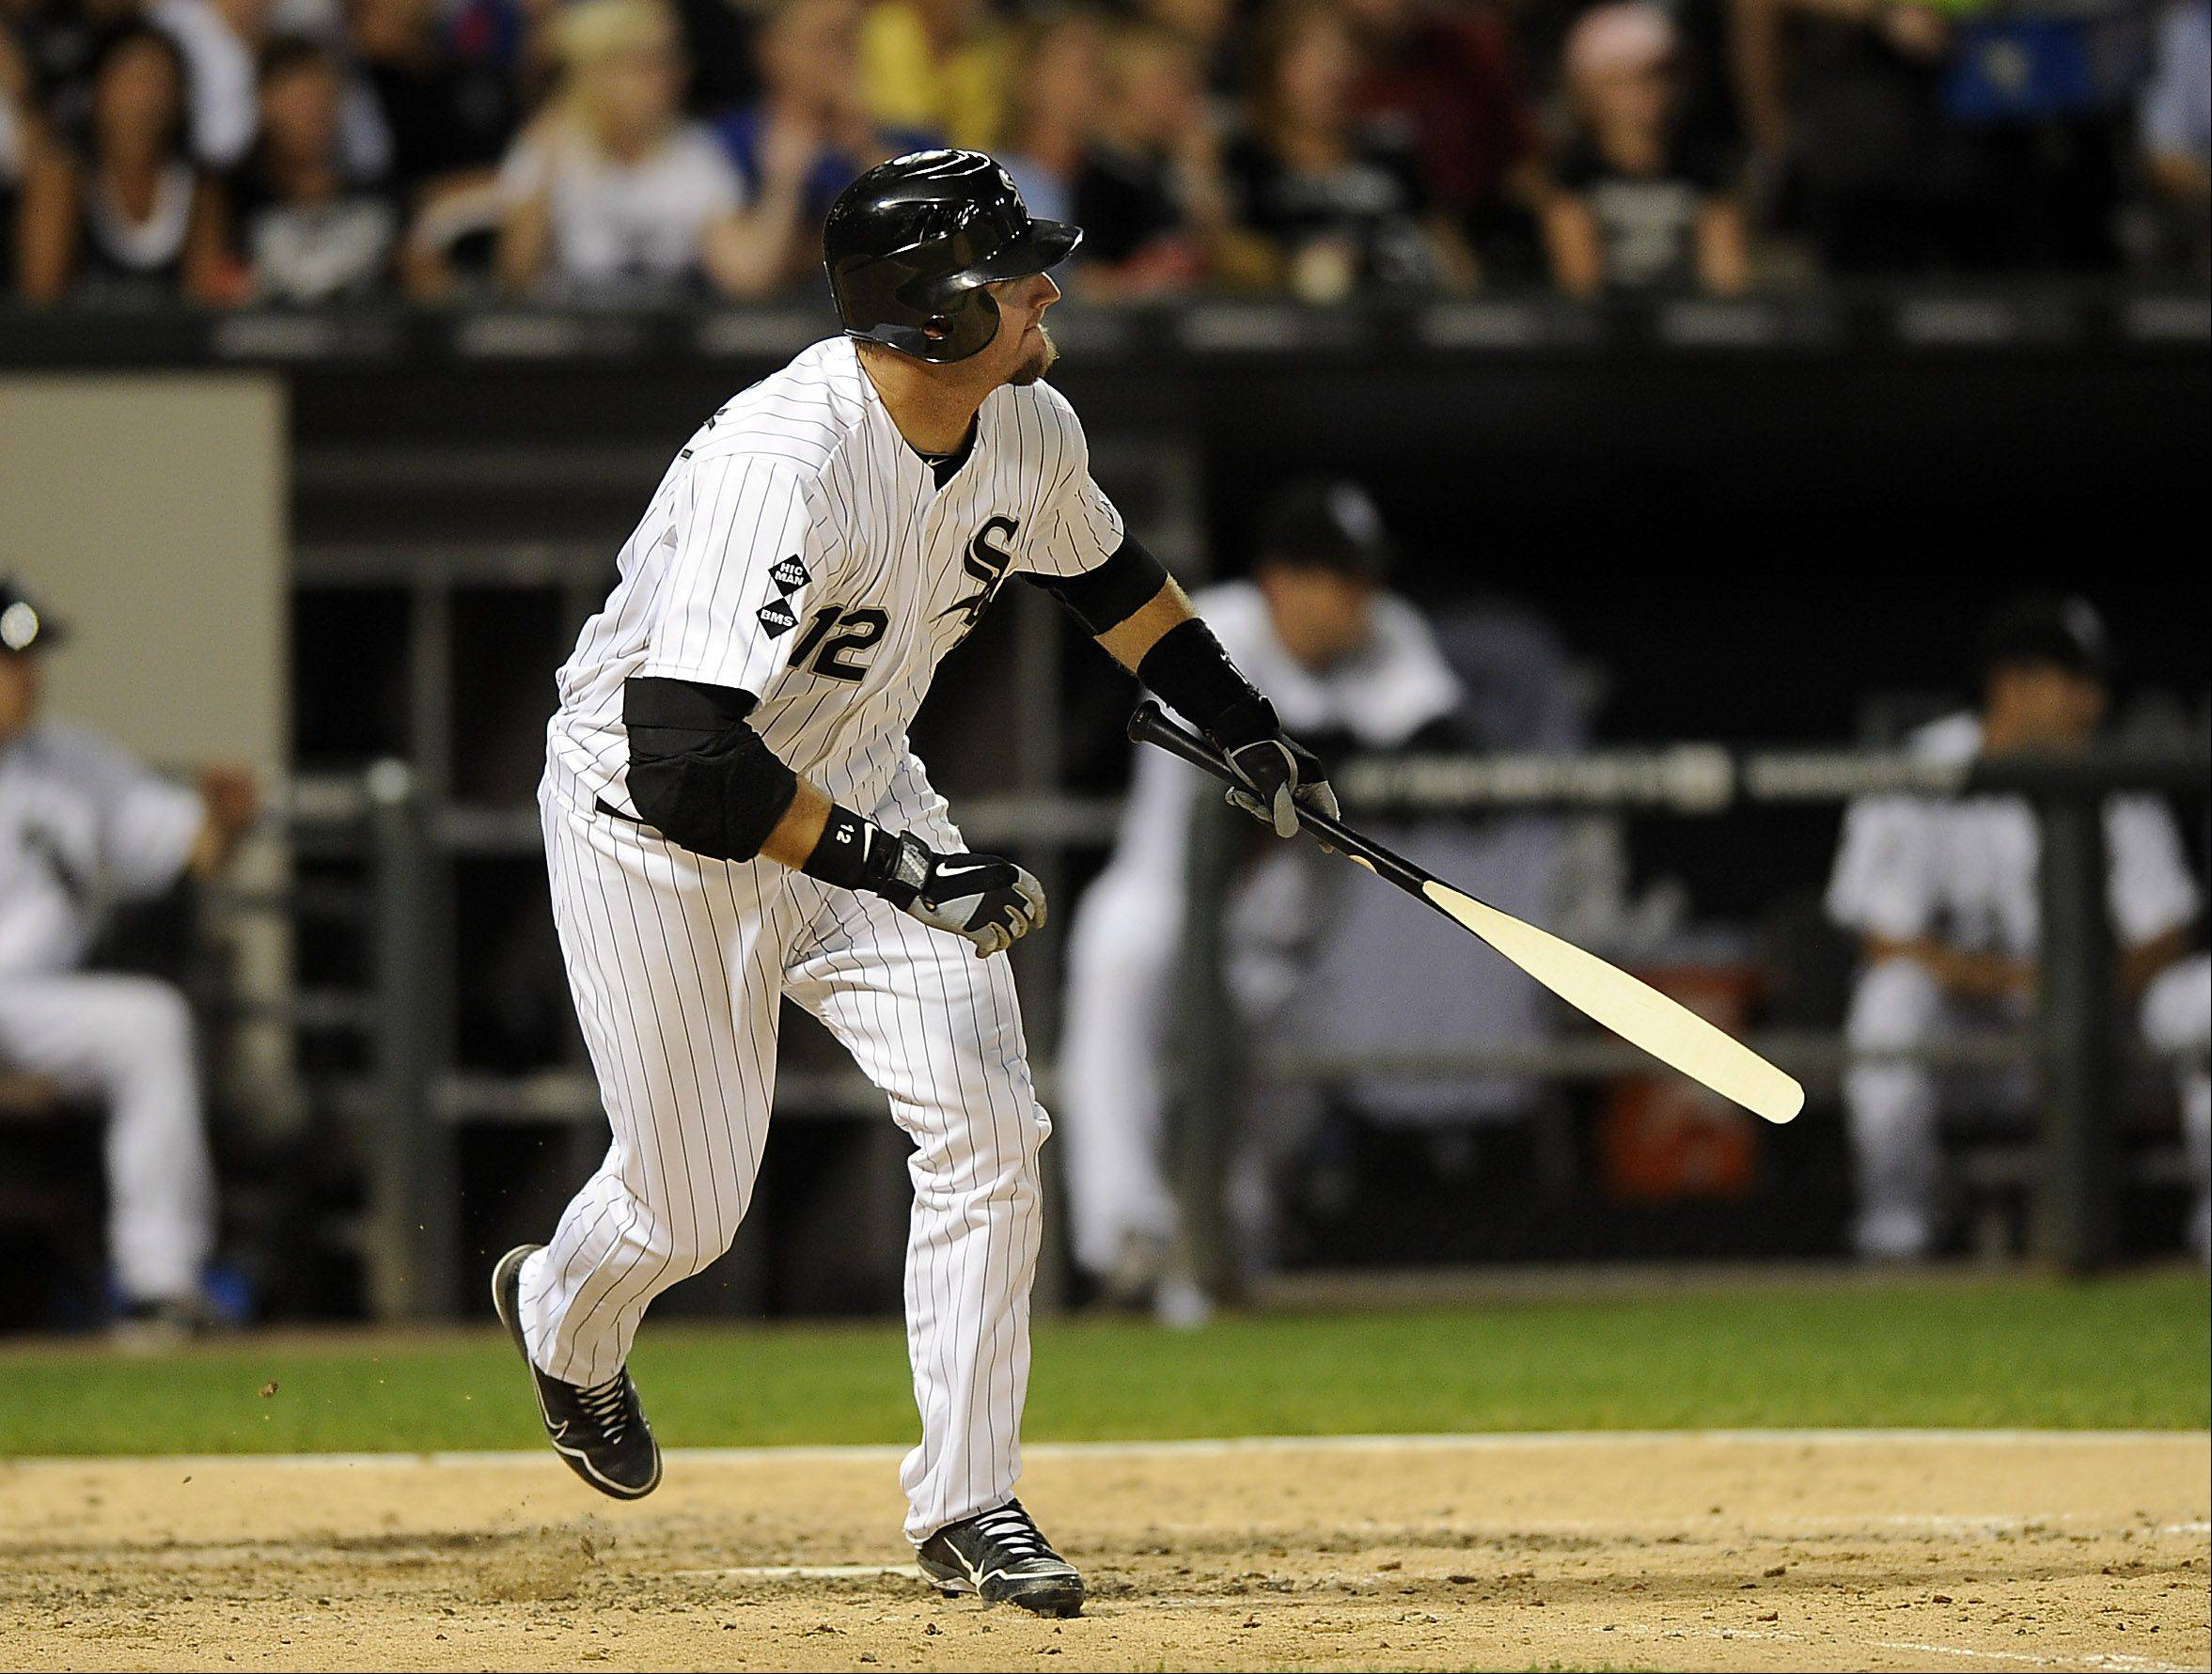 White Sox catcher A.J. Pierzynski earned his first Silver Slugger Award for his hitting in 2012. Pierzynski hit a career-high 27 home runs in 135 games and he also set career bests in runs scored (68), slugging percentage (.501) and OPS (.827) and matched his season high with 77 RBI (also 2004).